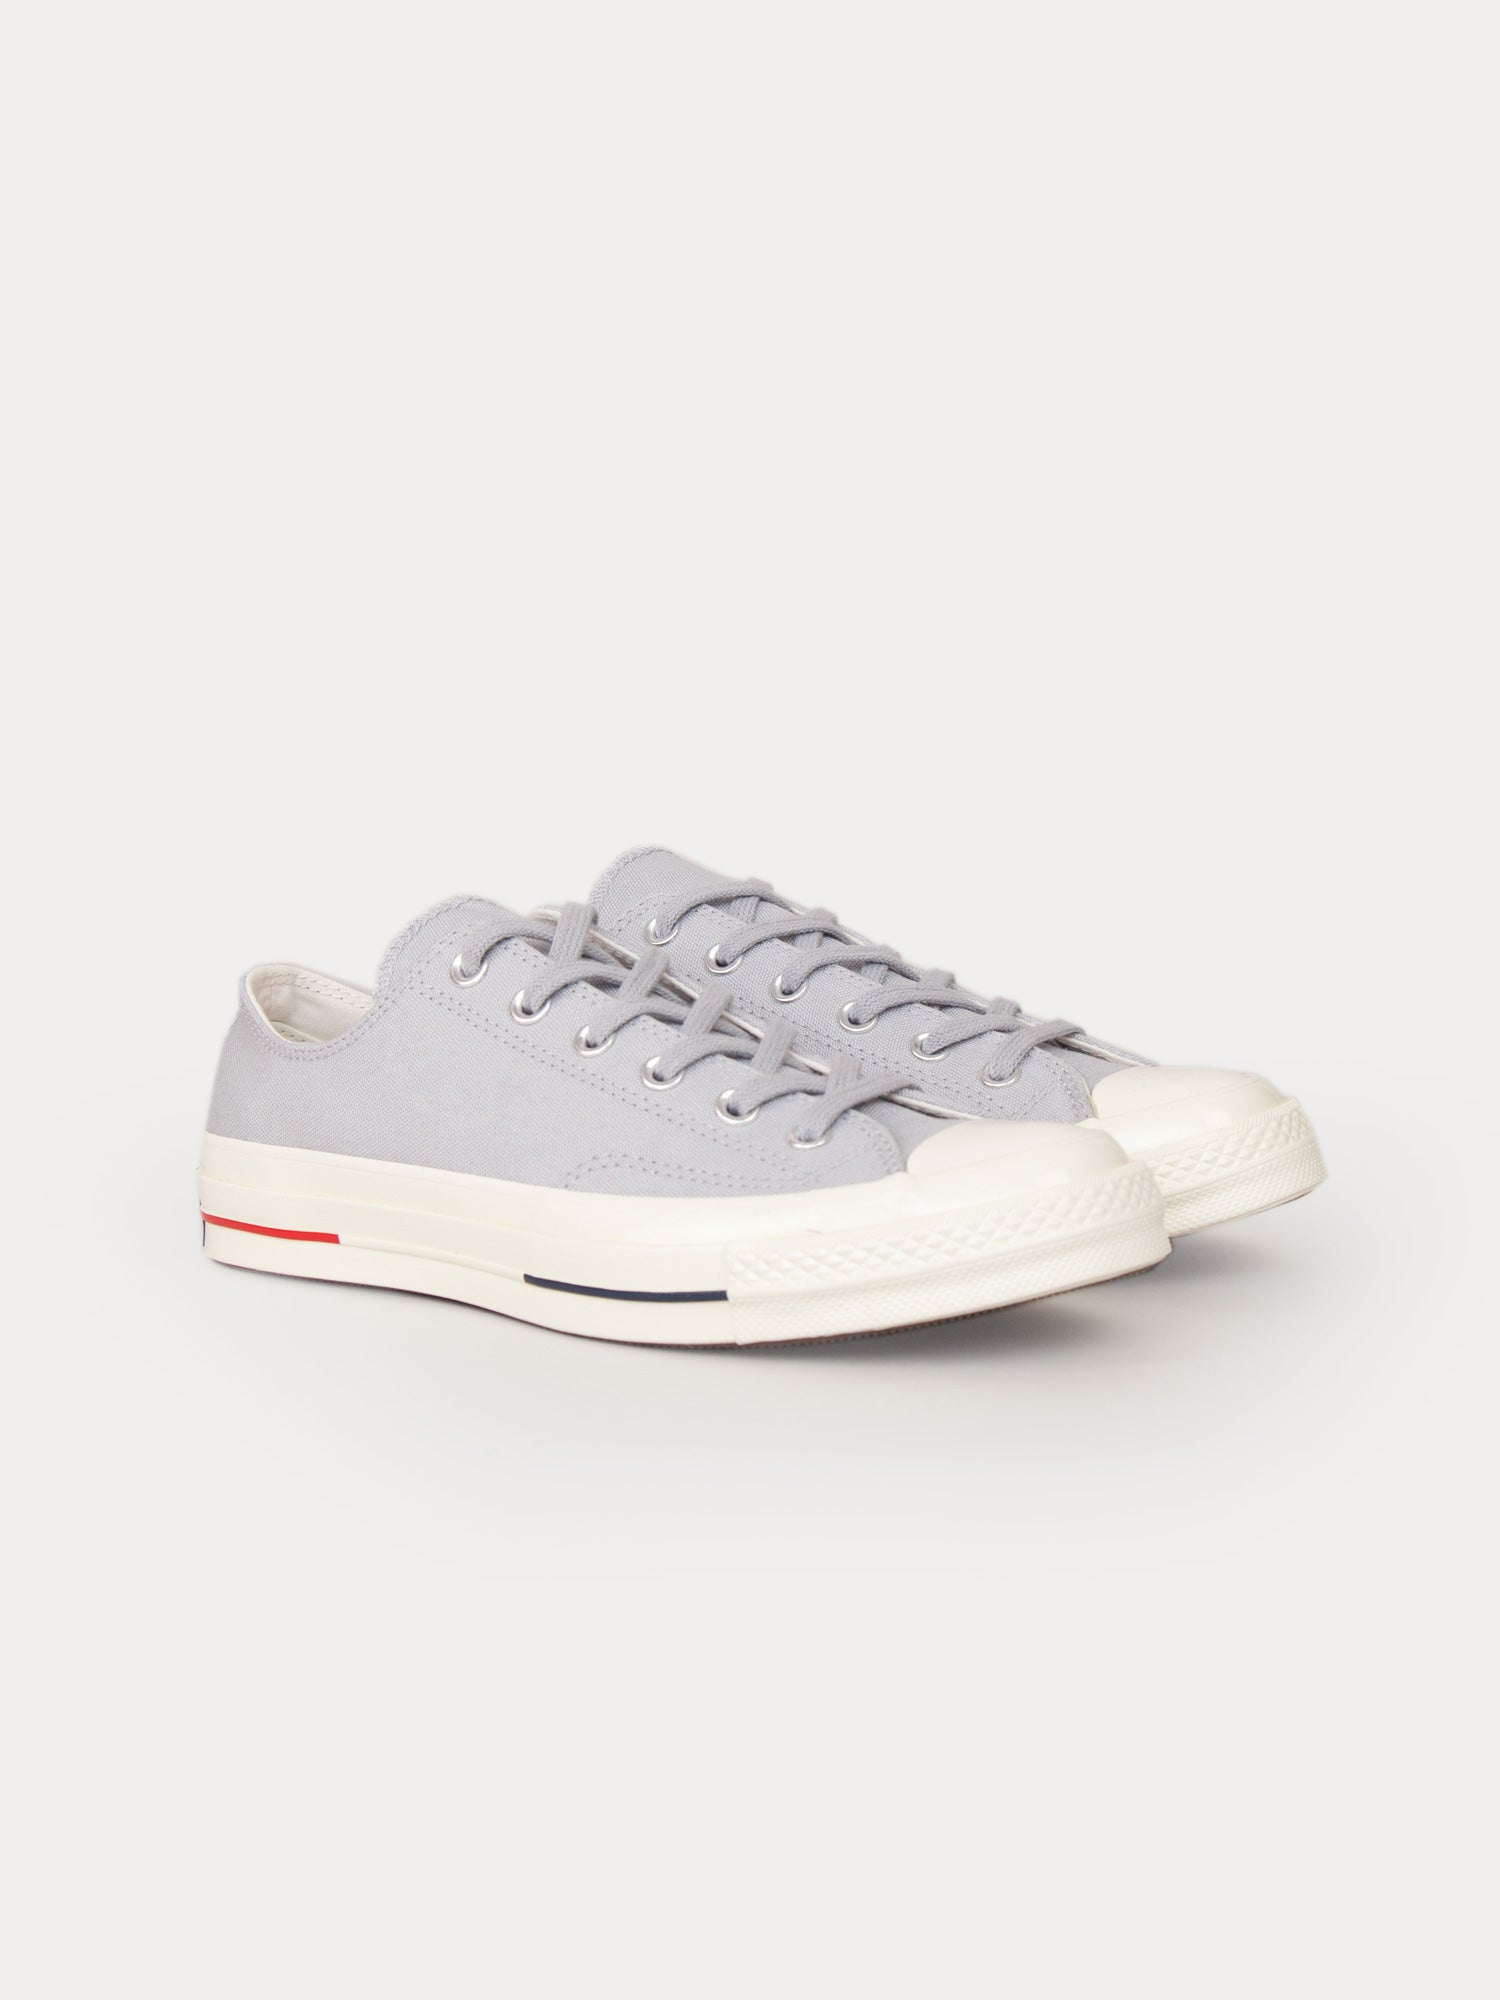 save off b1a73 b4967 Converse-Chuck-Taylor-All-Star-70-Ox- Wolf-Grey -3.jpg v 1536507911